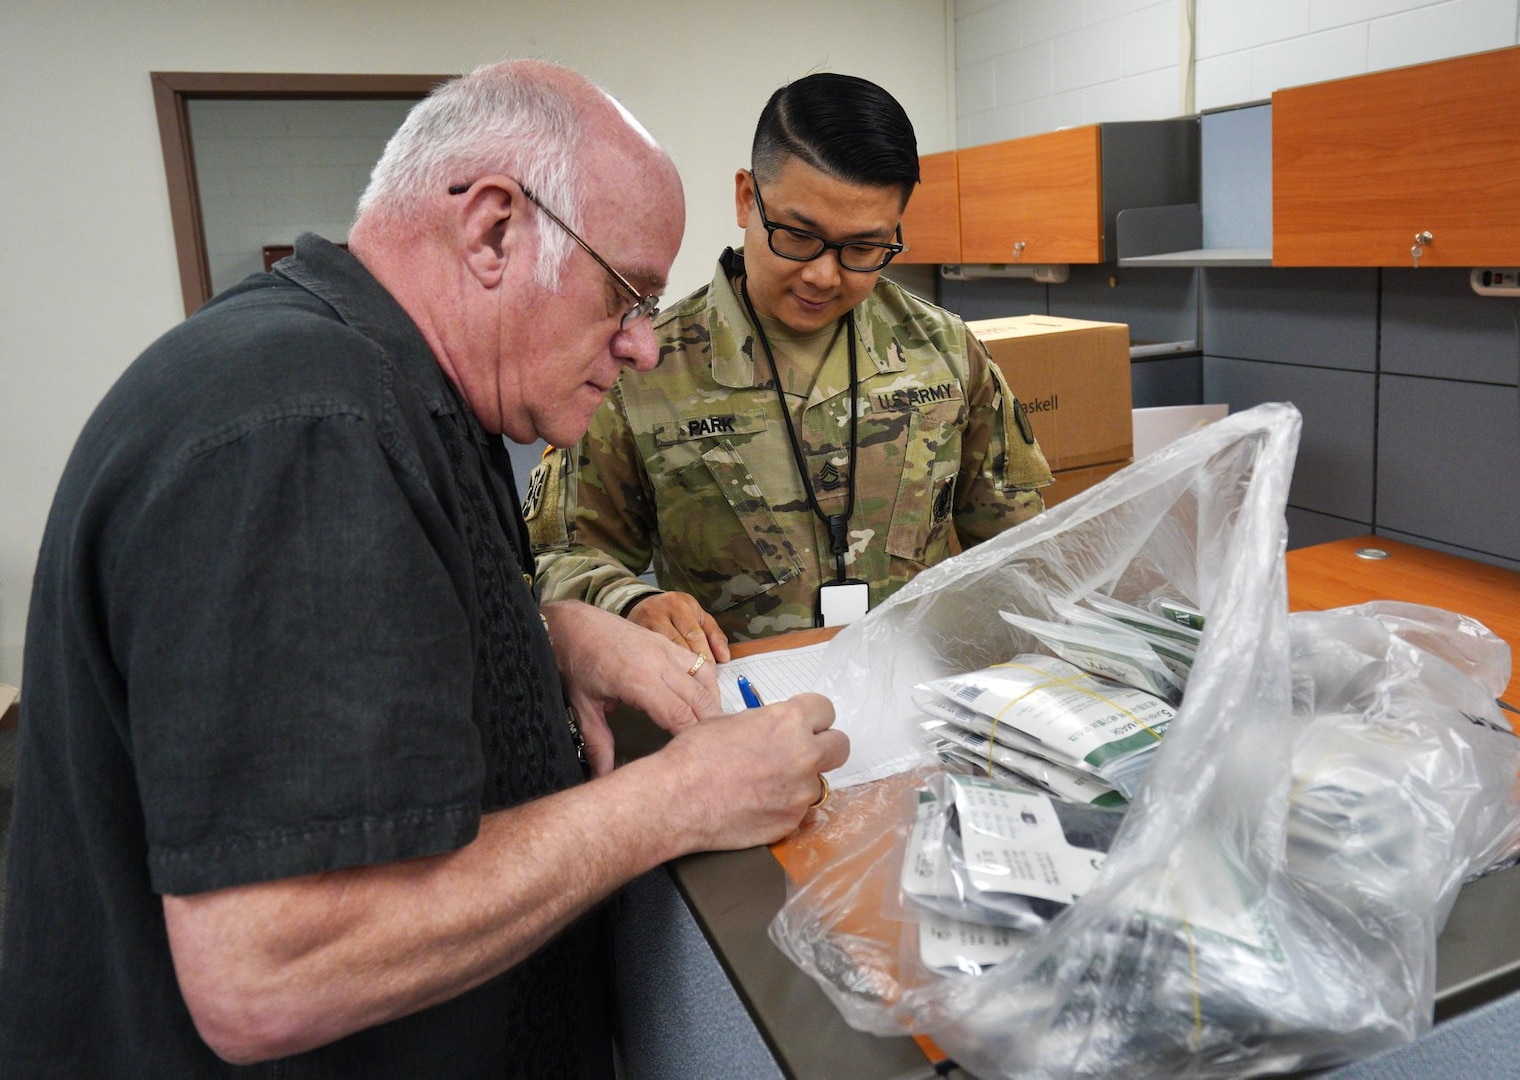 A man signs a piece of paper with a bag of unrecognizable objects next to him as a service member in uniform watches.